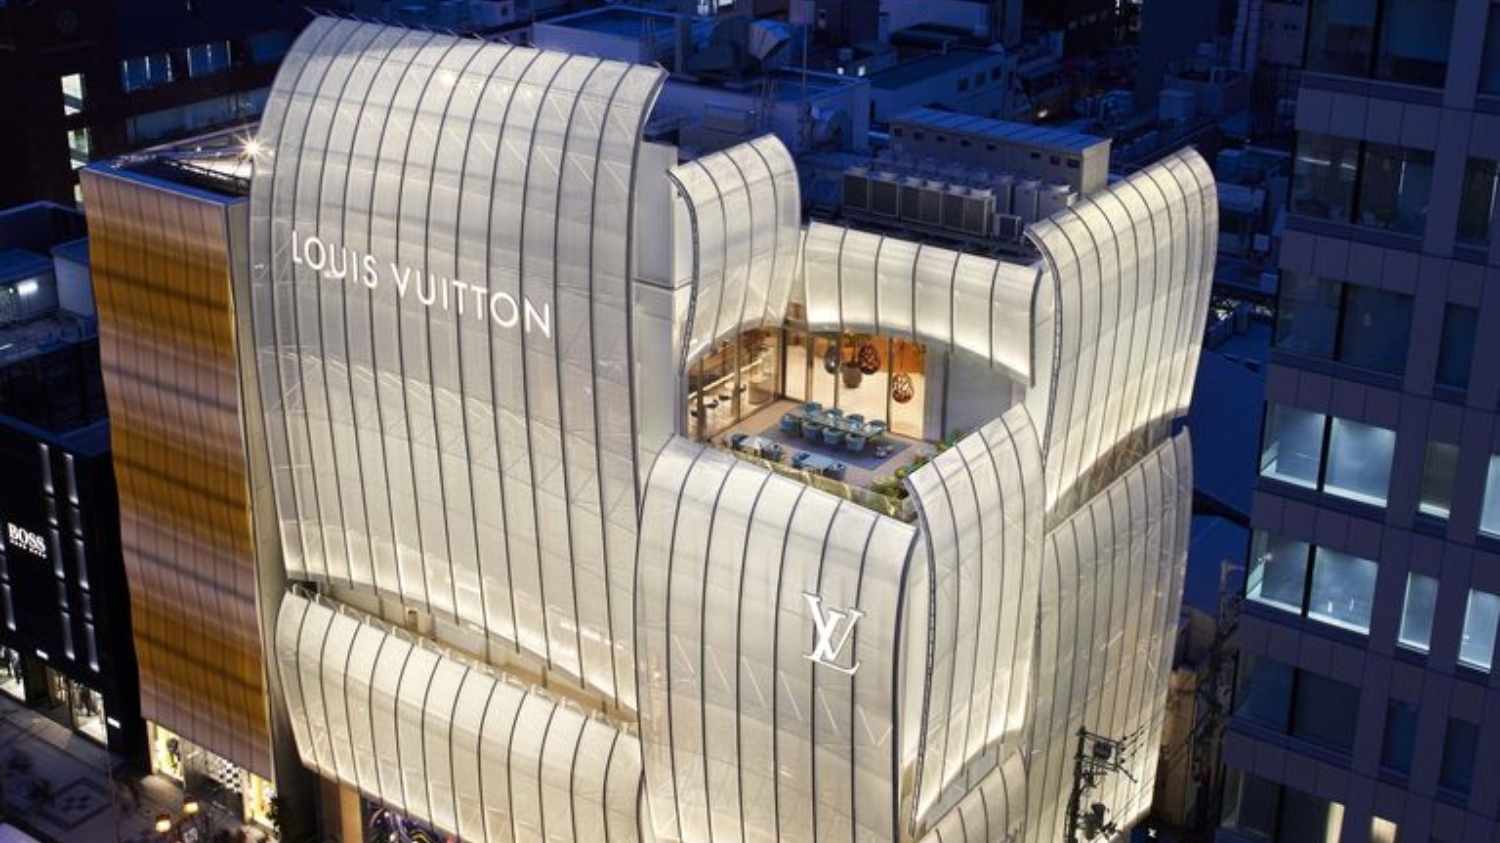 Louis Vuitton is opening a café and a restaurant